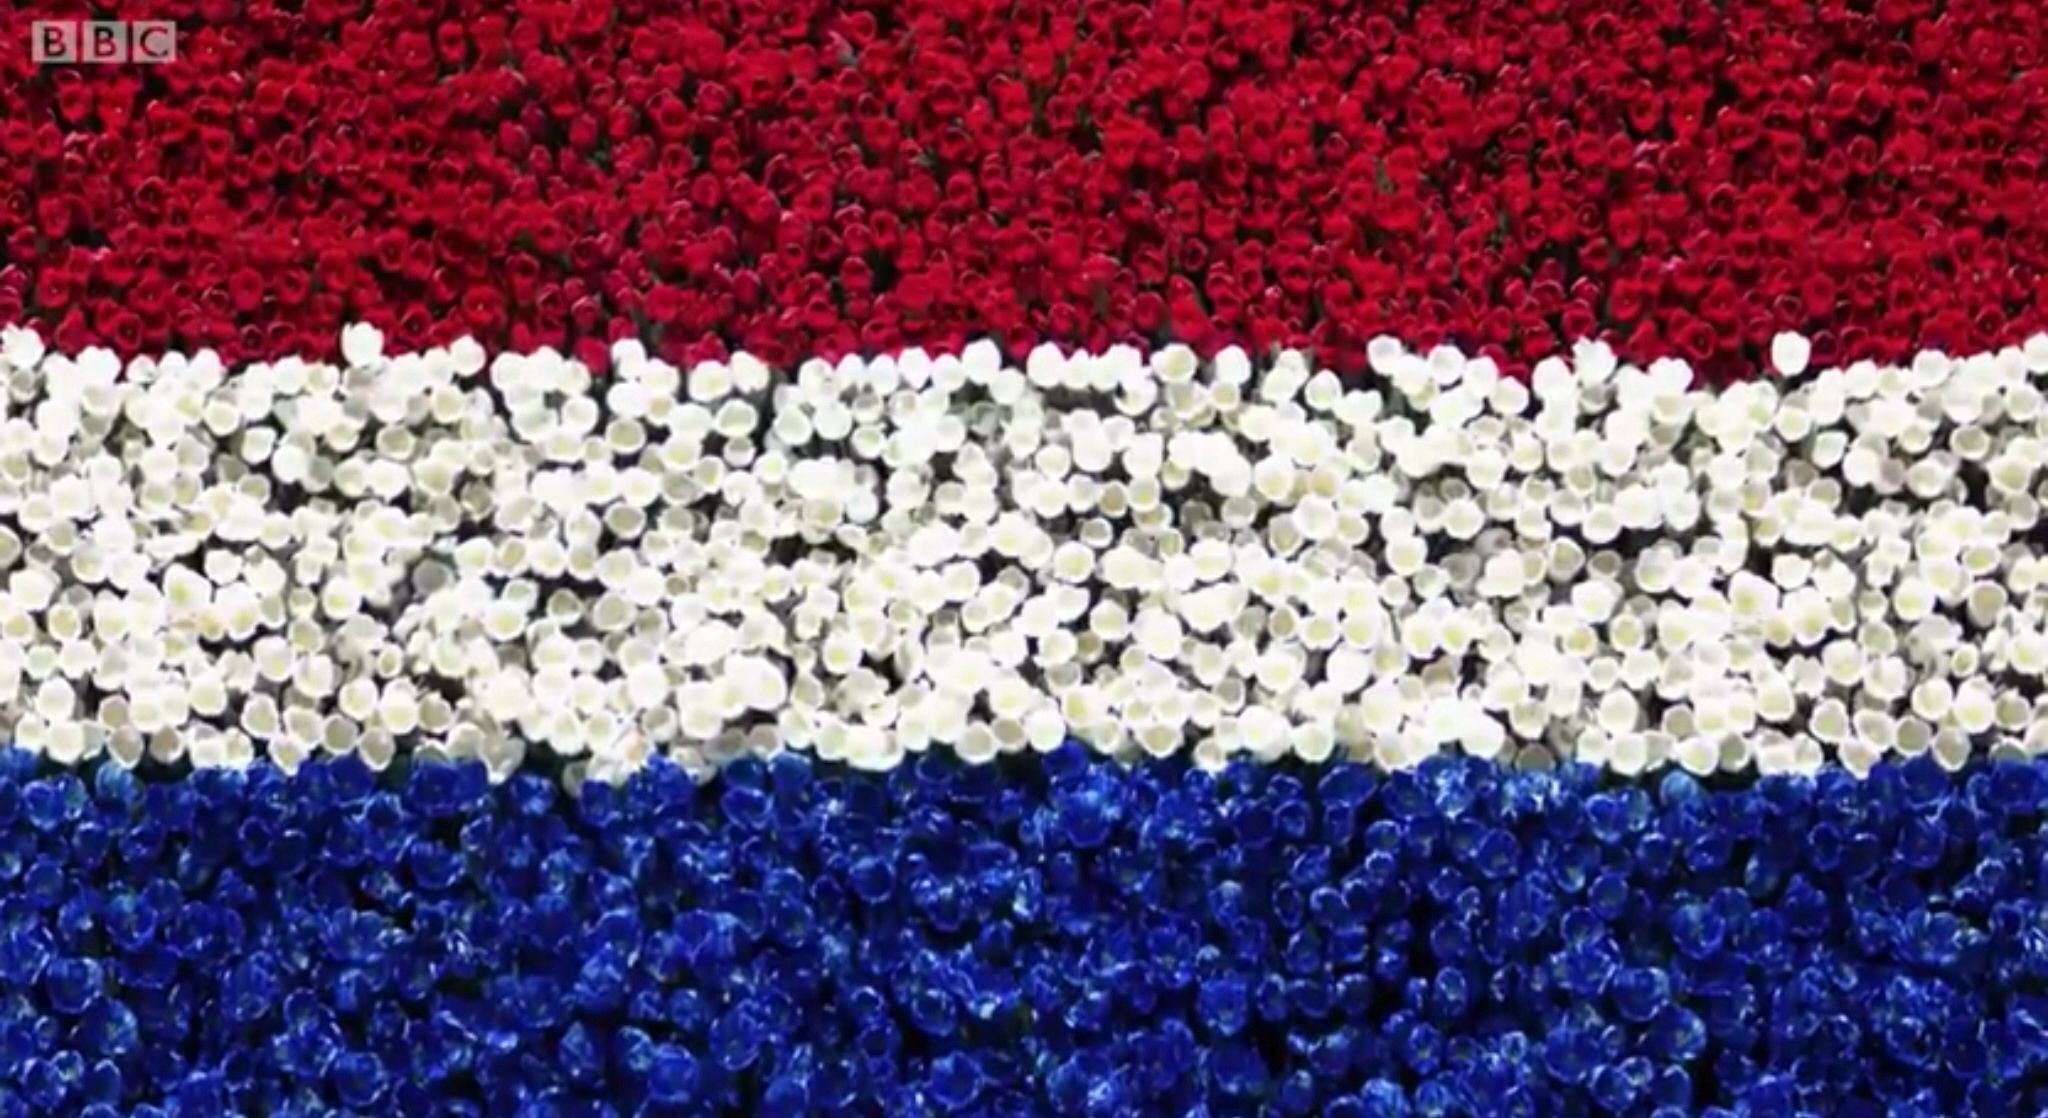 eurovision song contest 2014 the netherlands flag art eurovision